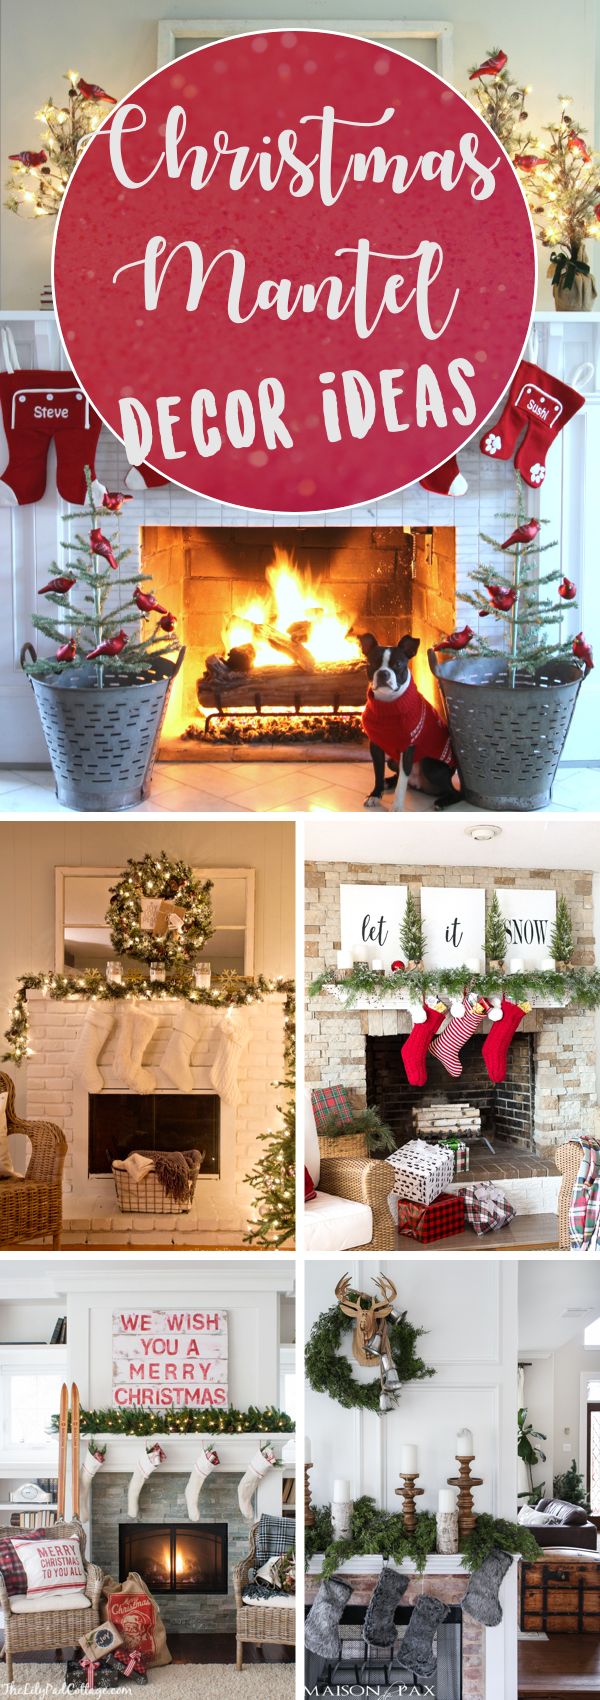 20 Ideas for a Christmas Mantel Decor Worth Remembering for Years!